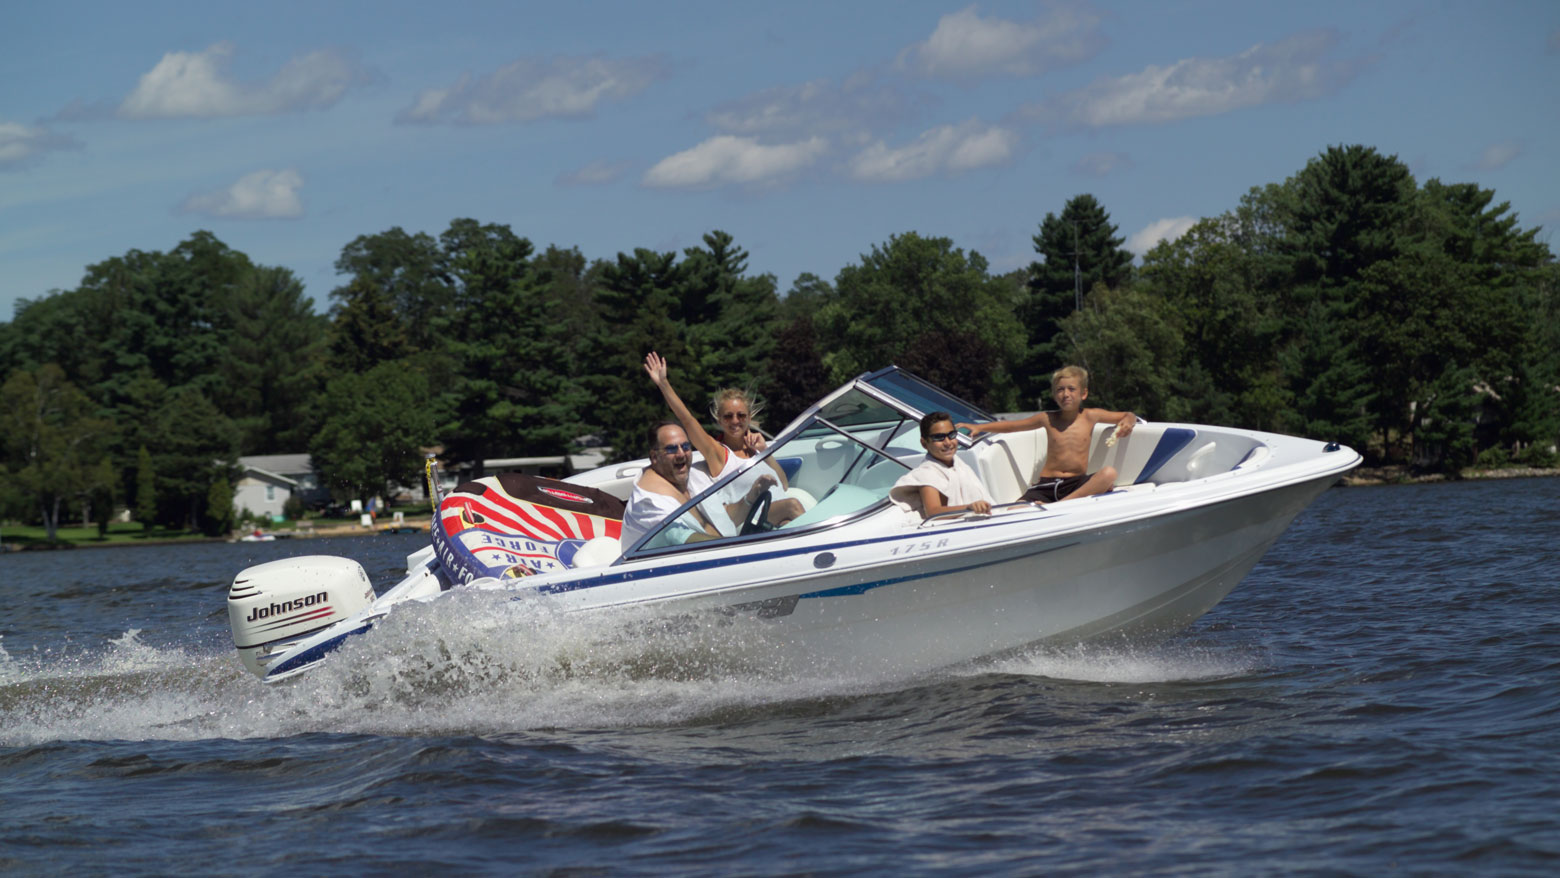 dells boat rental and marina